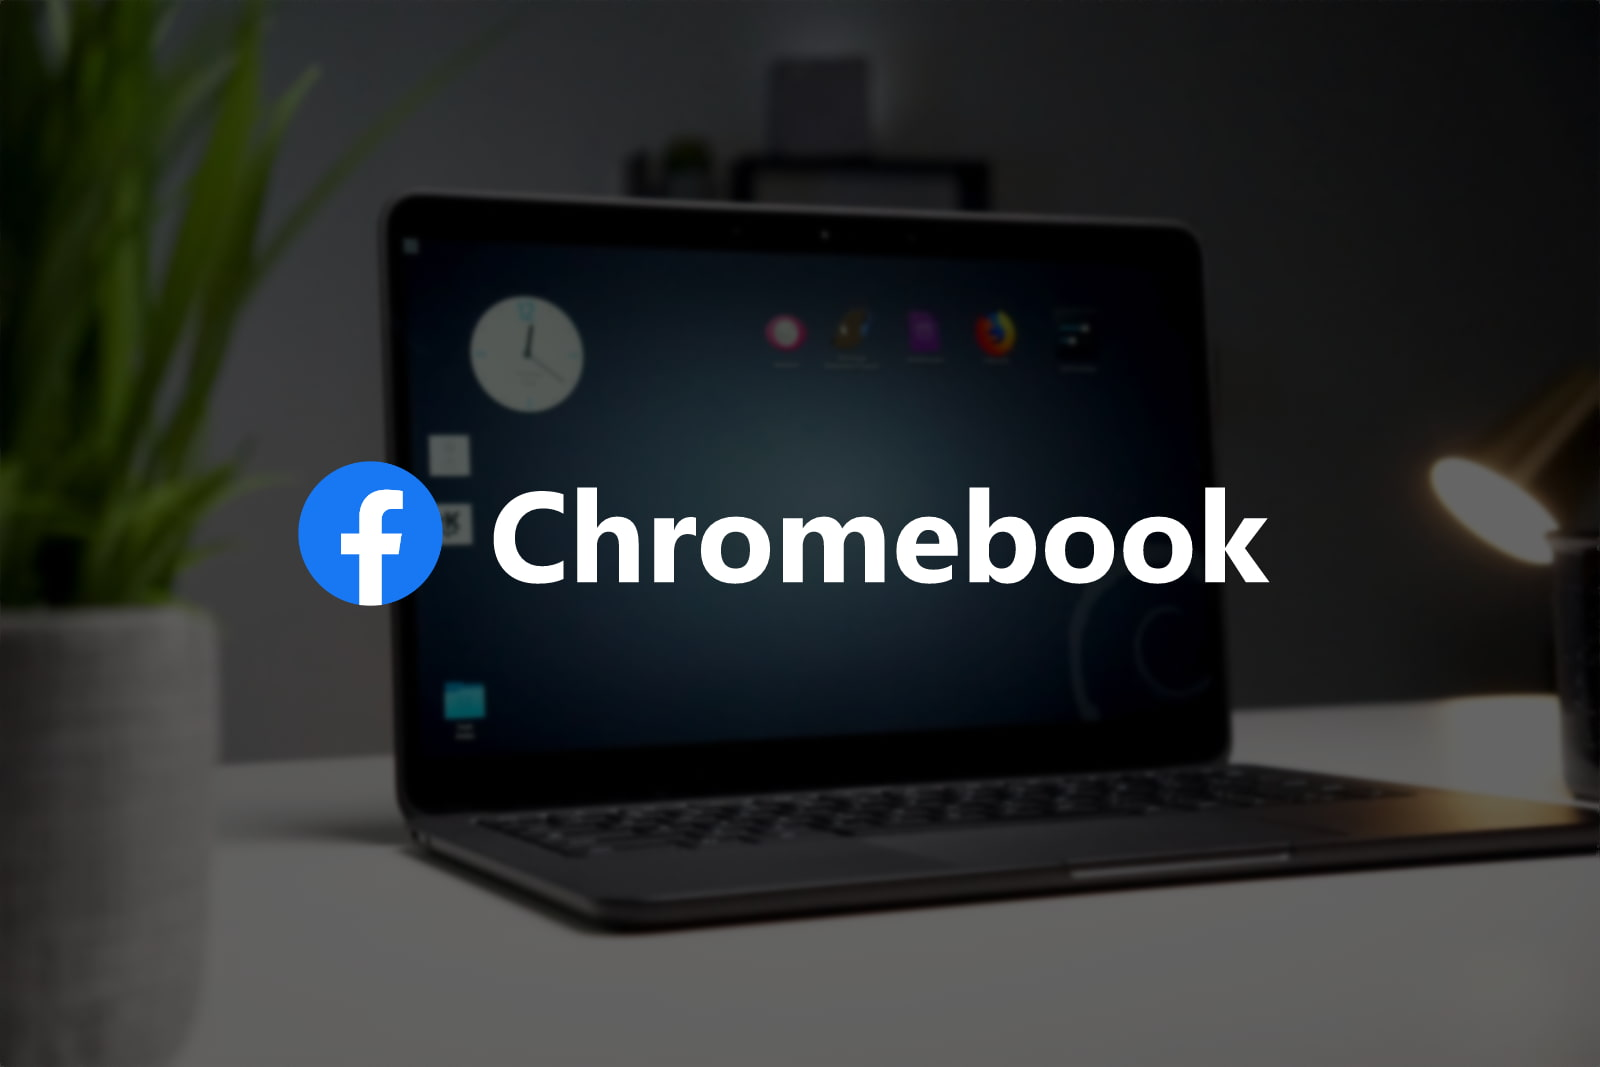 Facebook group offers support and community for Chromebook users